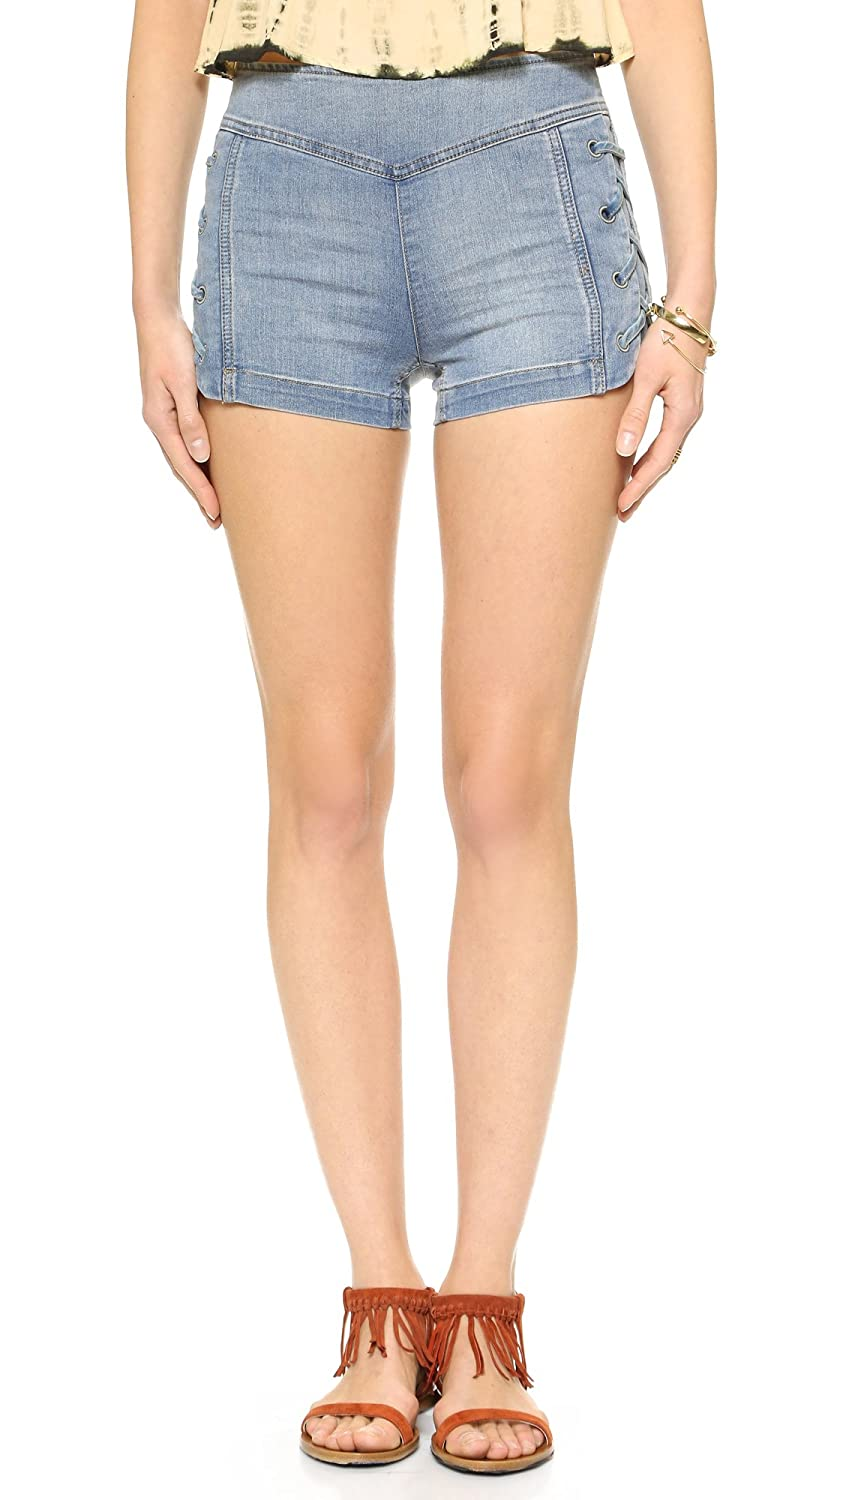 Free People Women's High Rise Lace-Up Denim Jean Shorts Dylan Blue Size 31